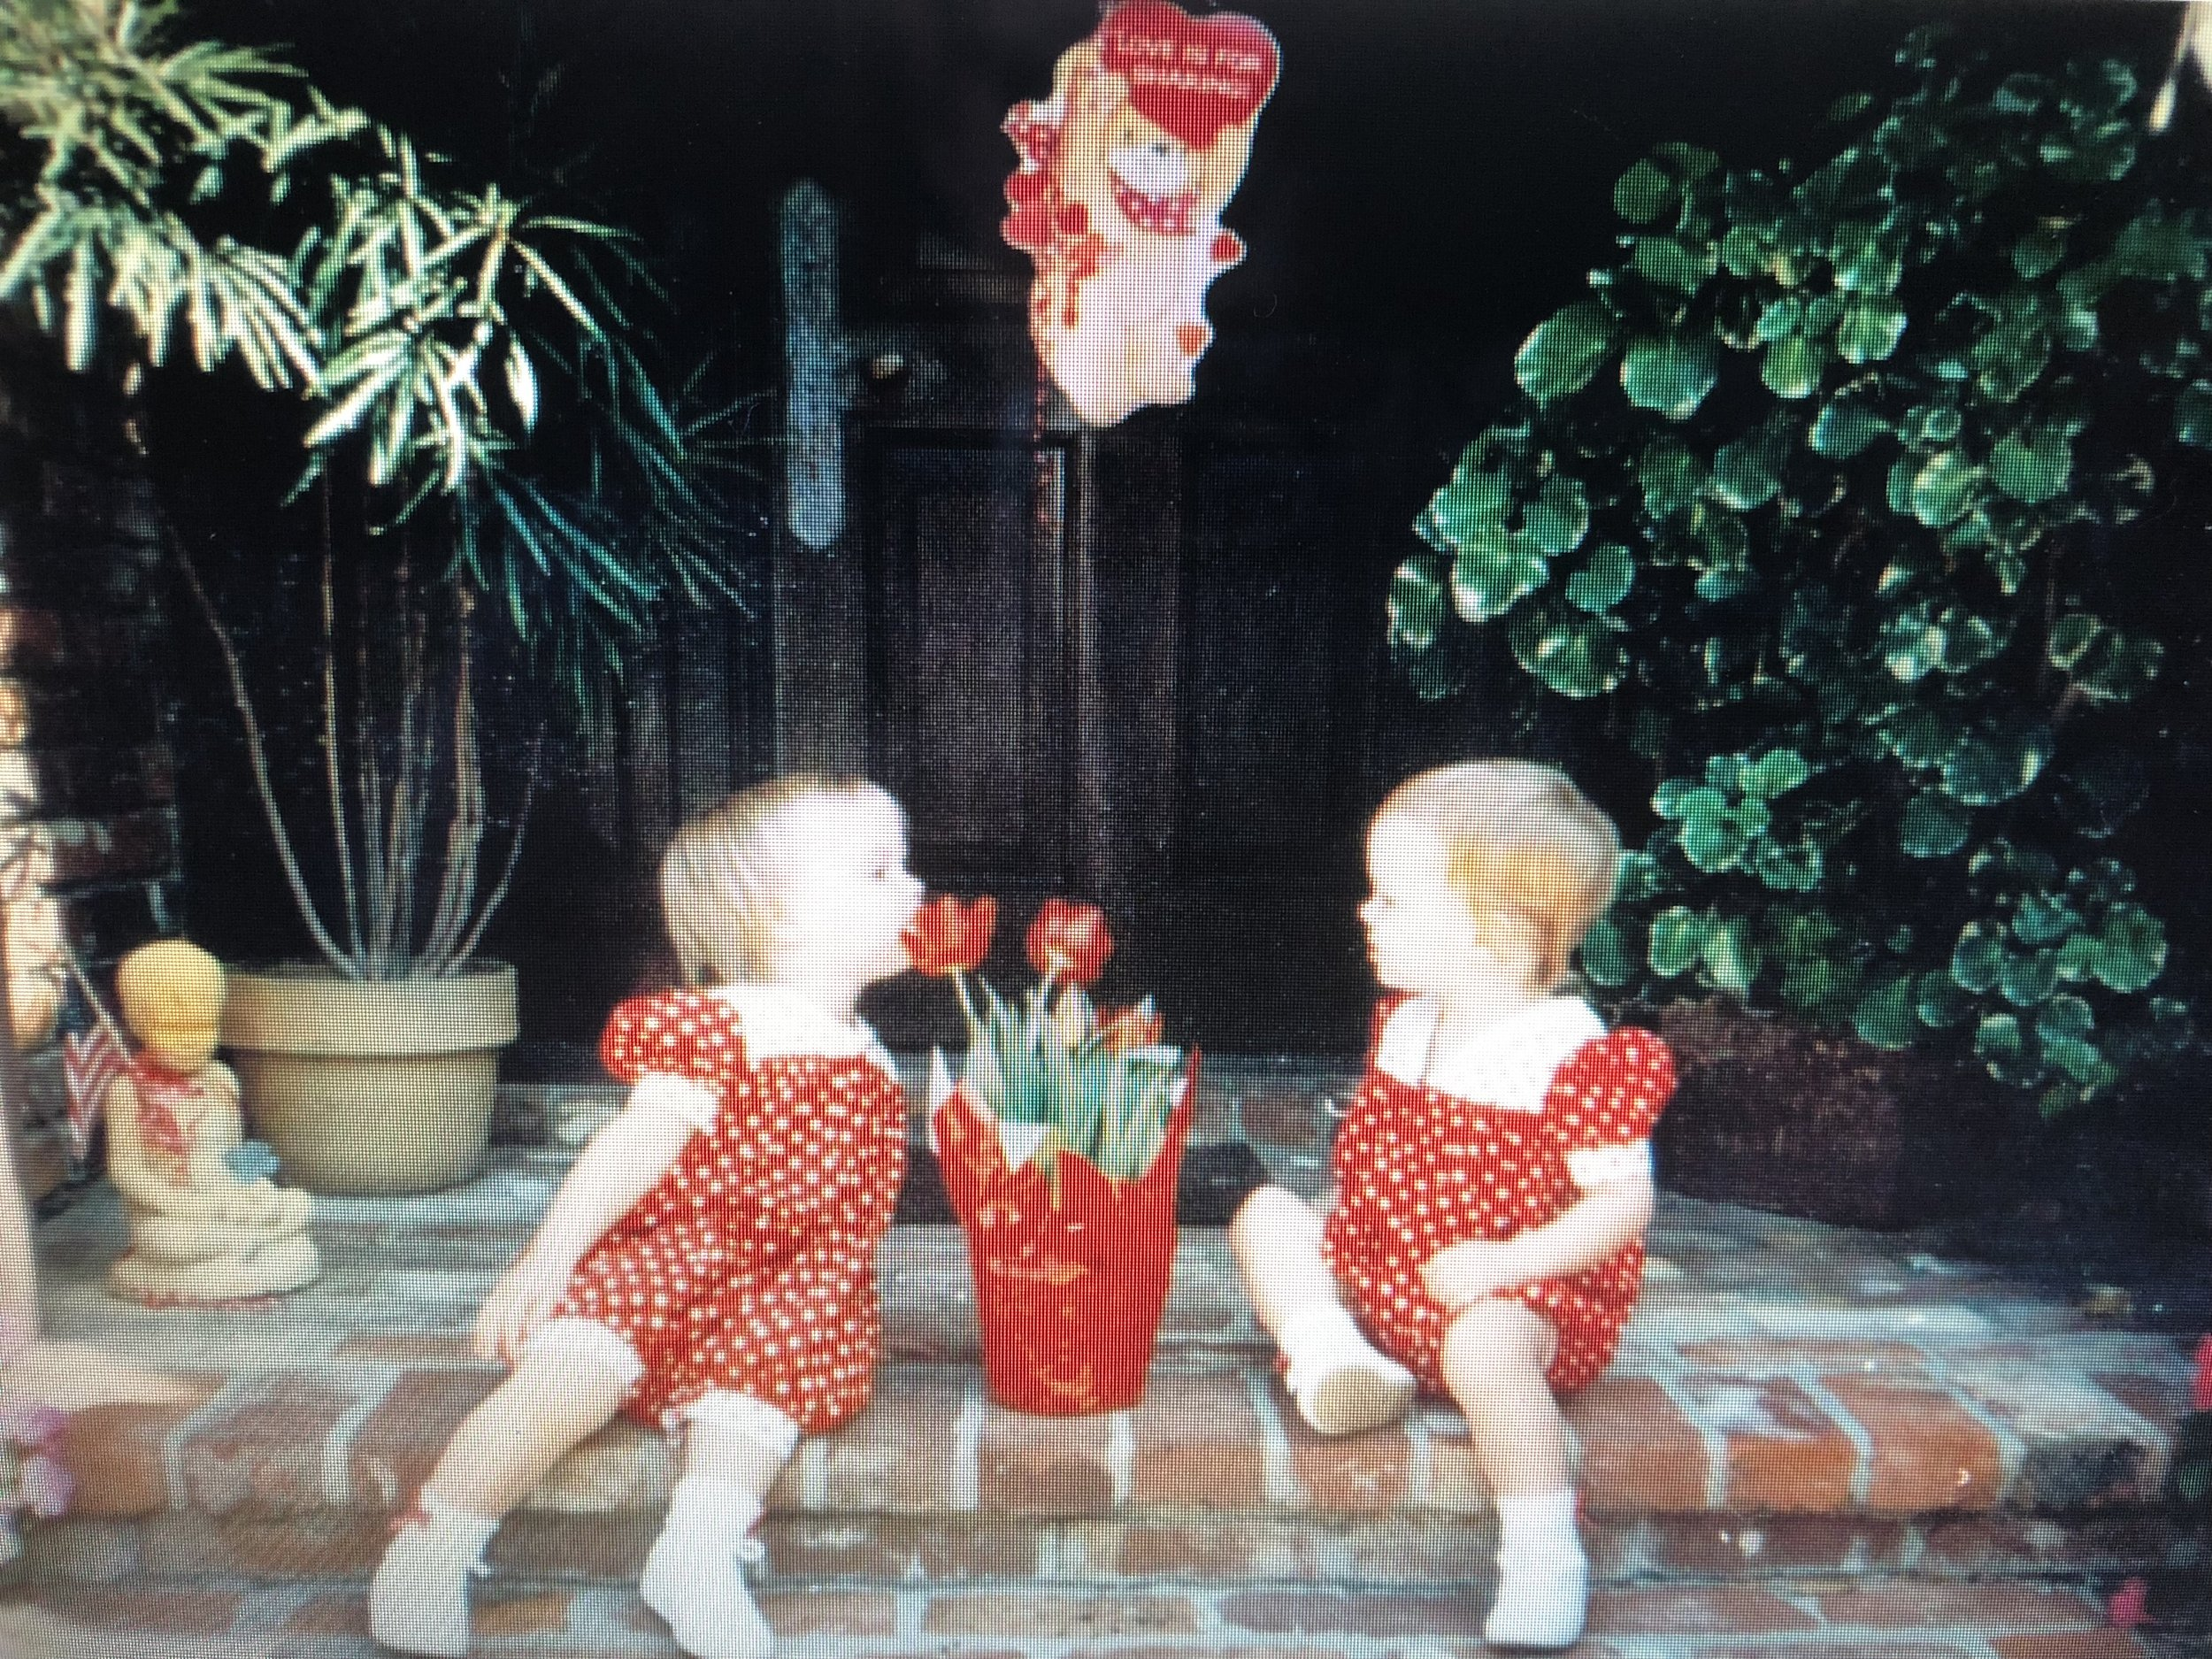 Valentine's Day circa 1992 where my sister attempted to EAT a tulip